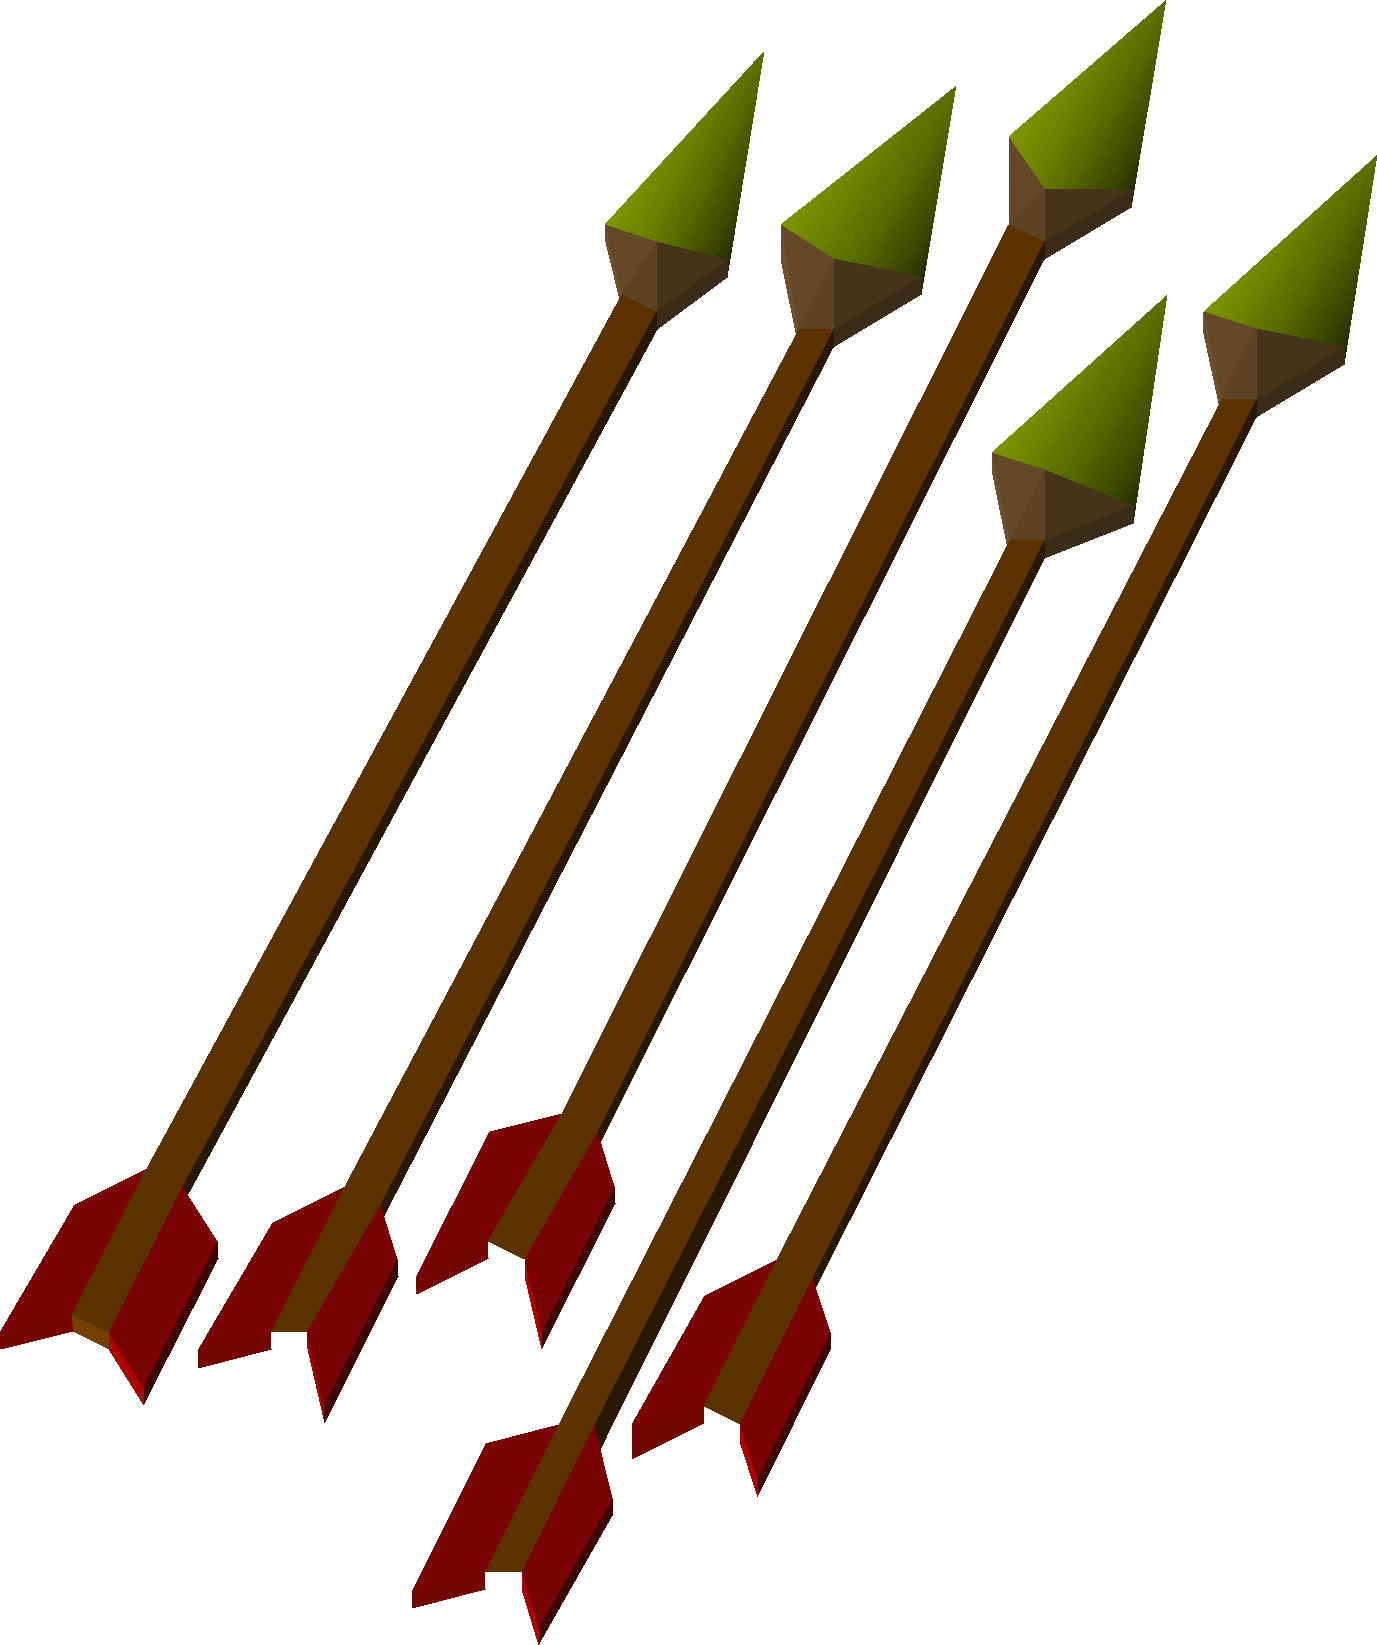 graphic royalty free stock Arrow feather clipart. Bronze old school runescape